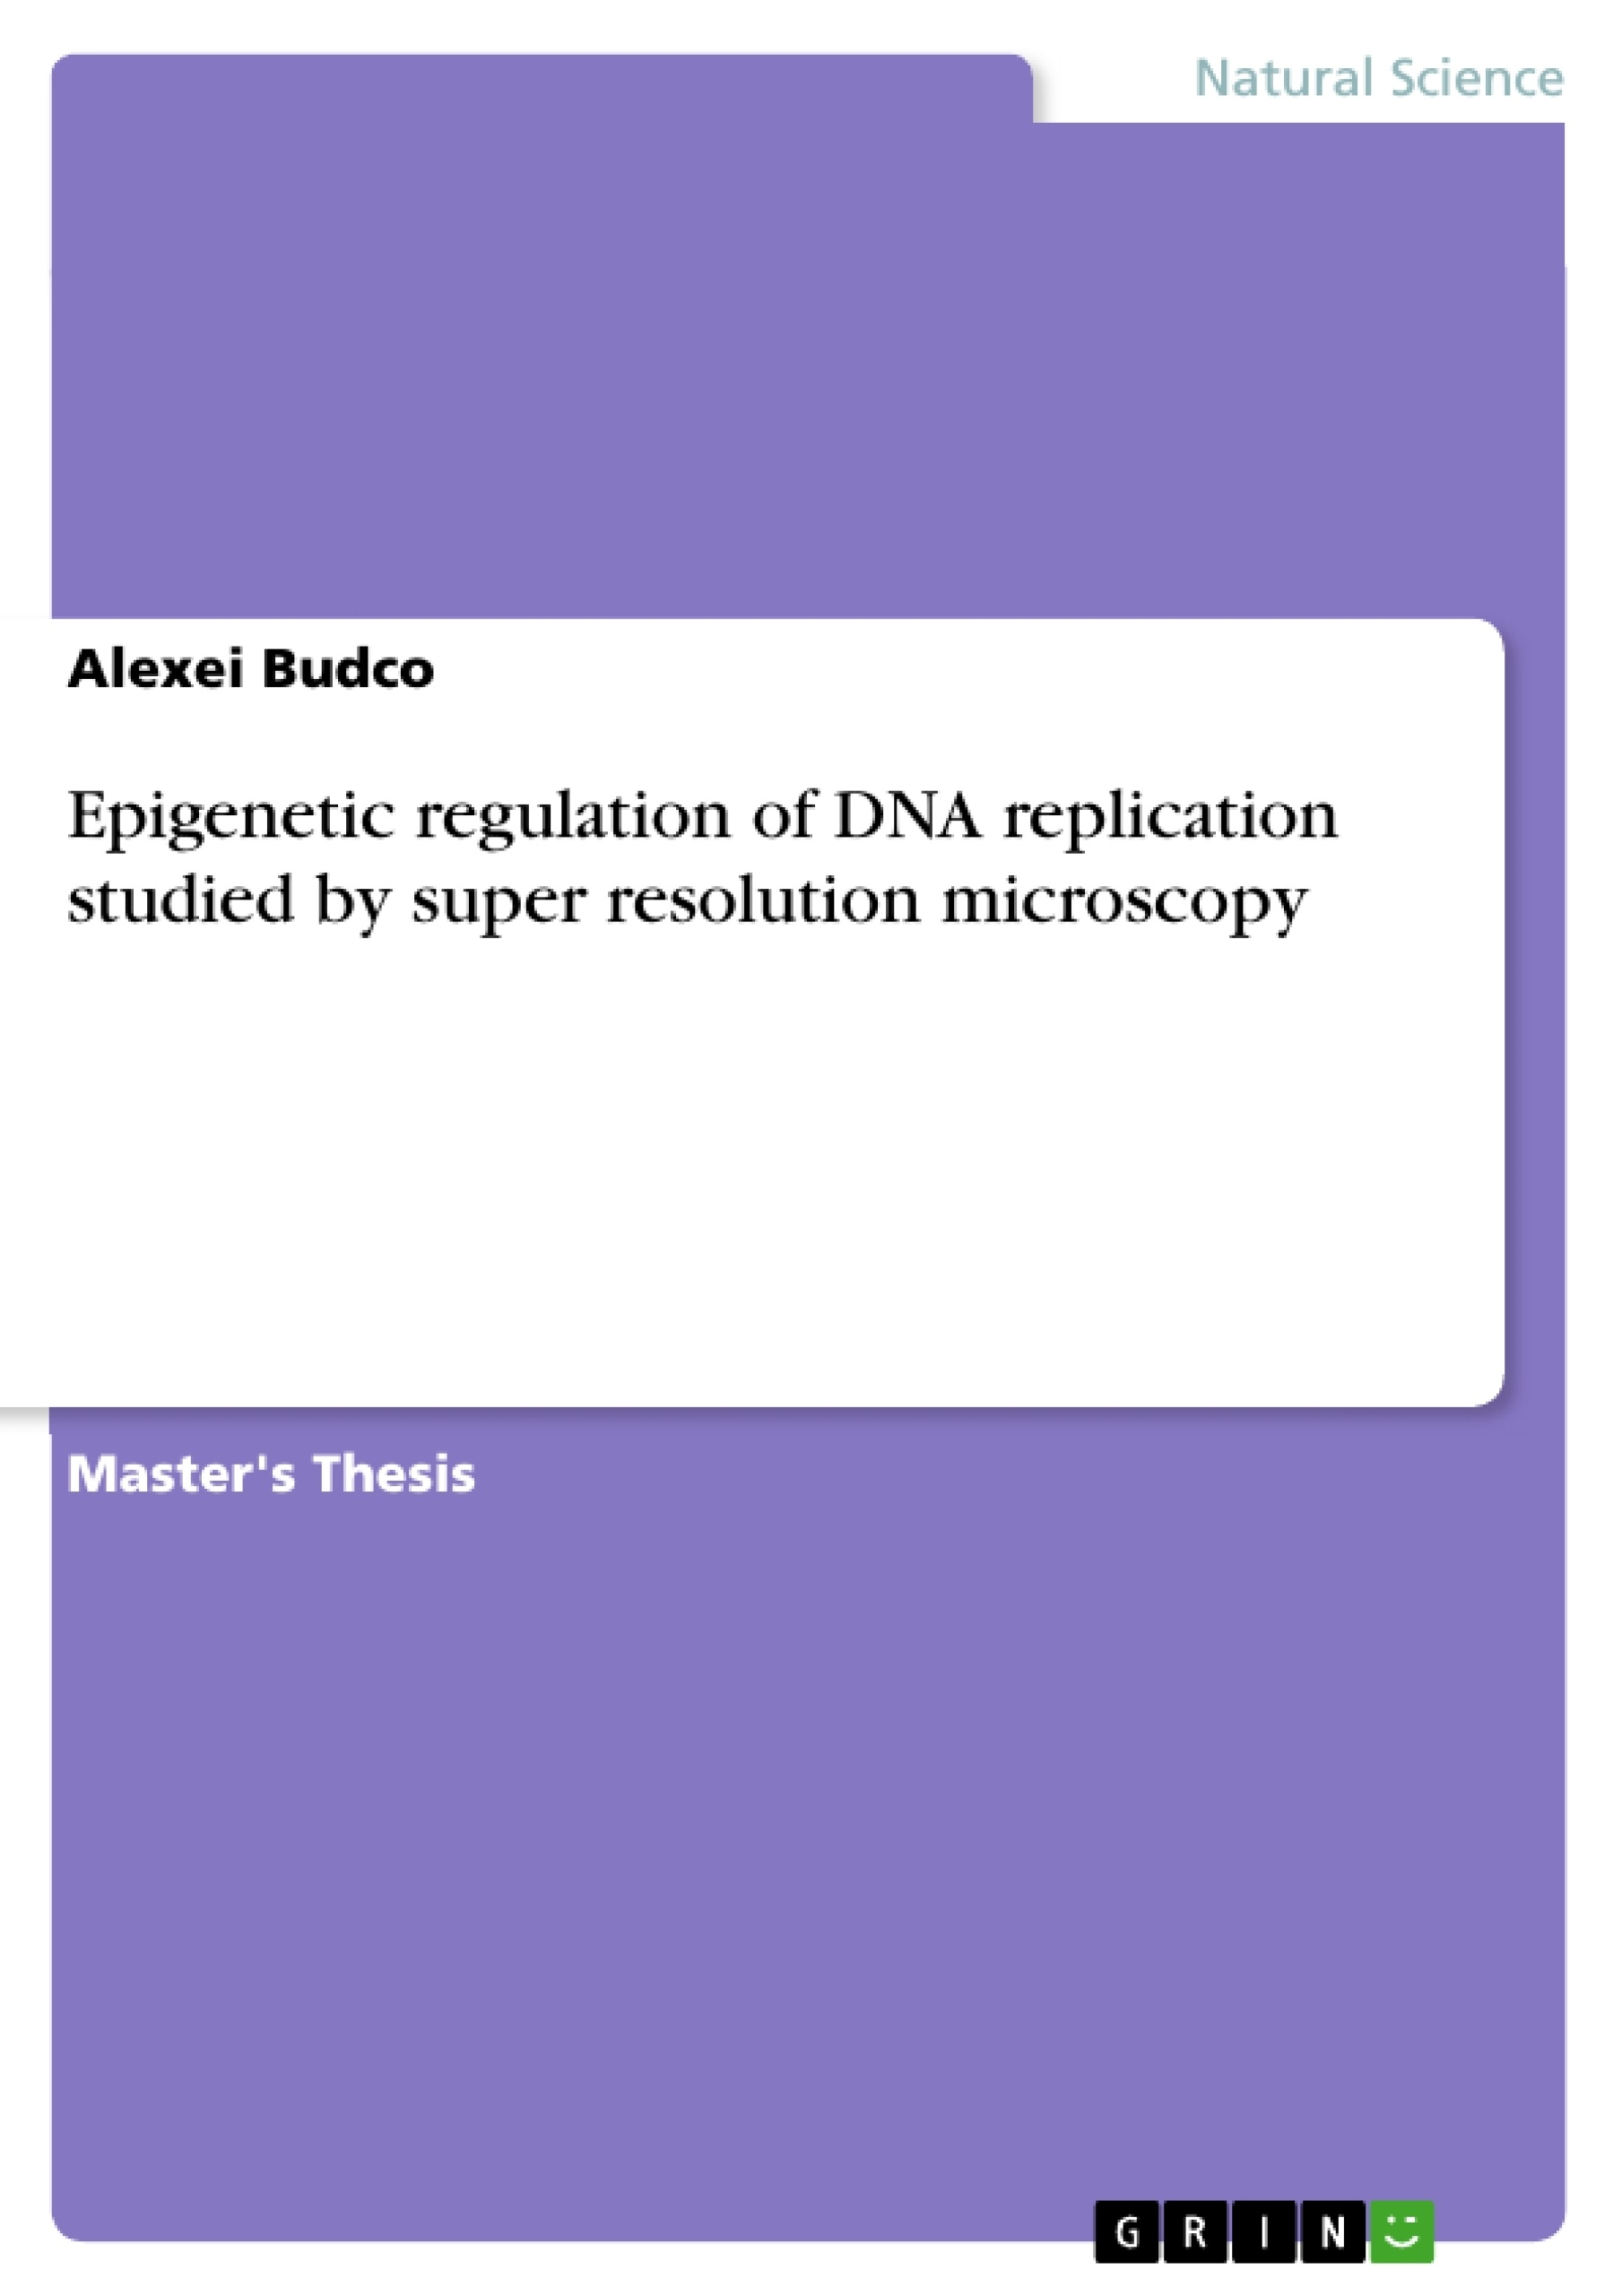 Title: Epigenetic regulation of DNA replication studied by super resolution microscopy